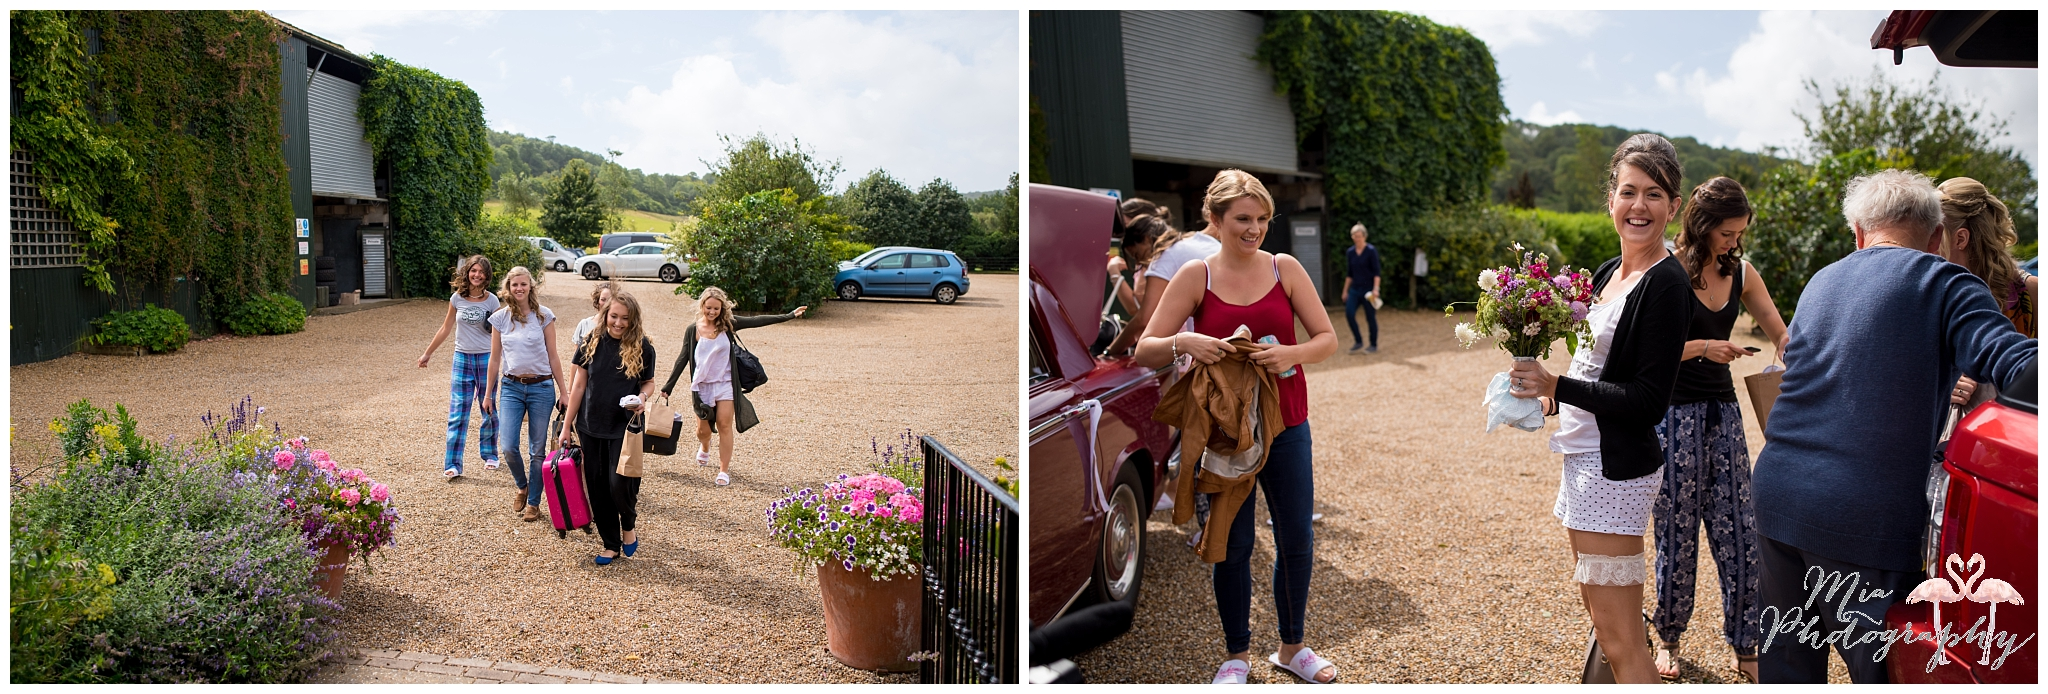 upwaltham_barns_wedding_photography_003